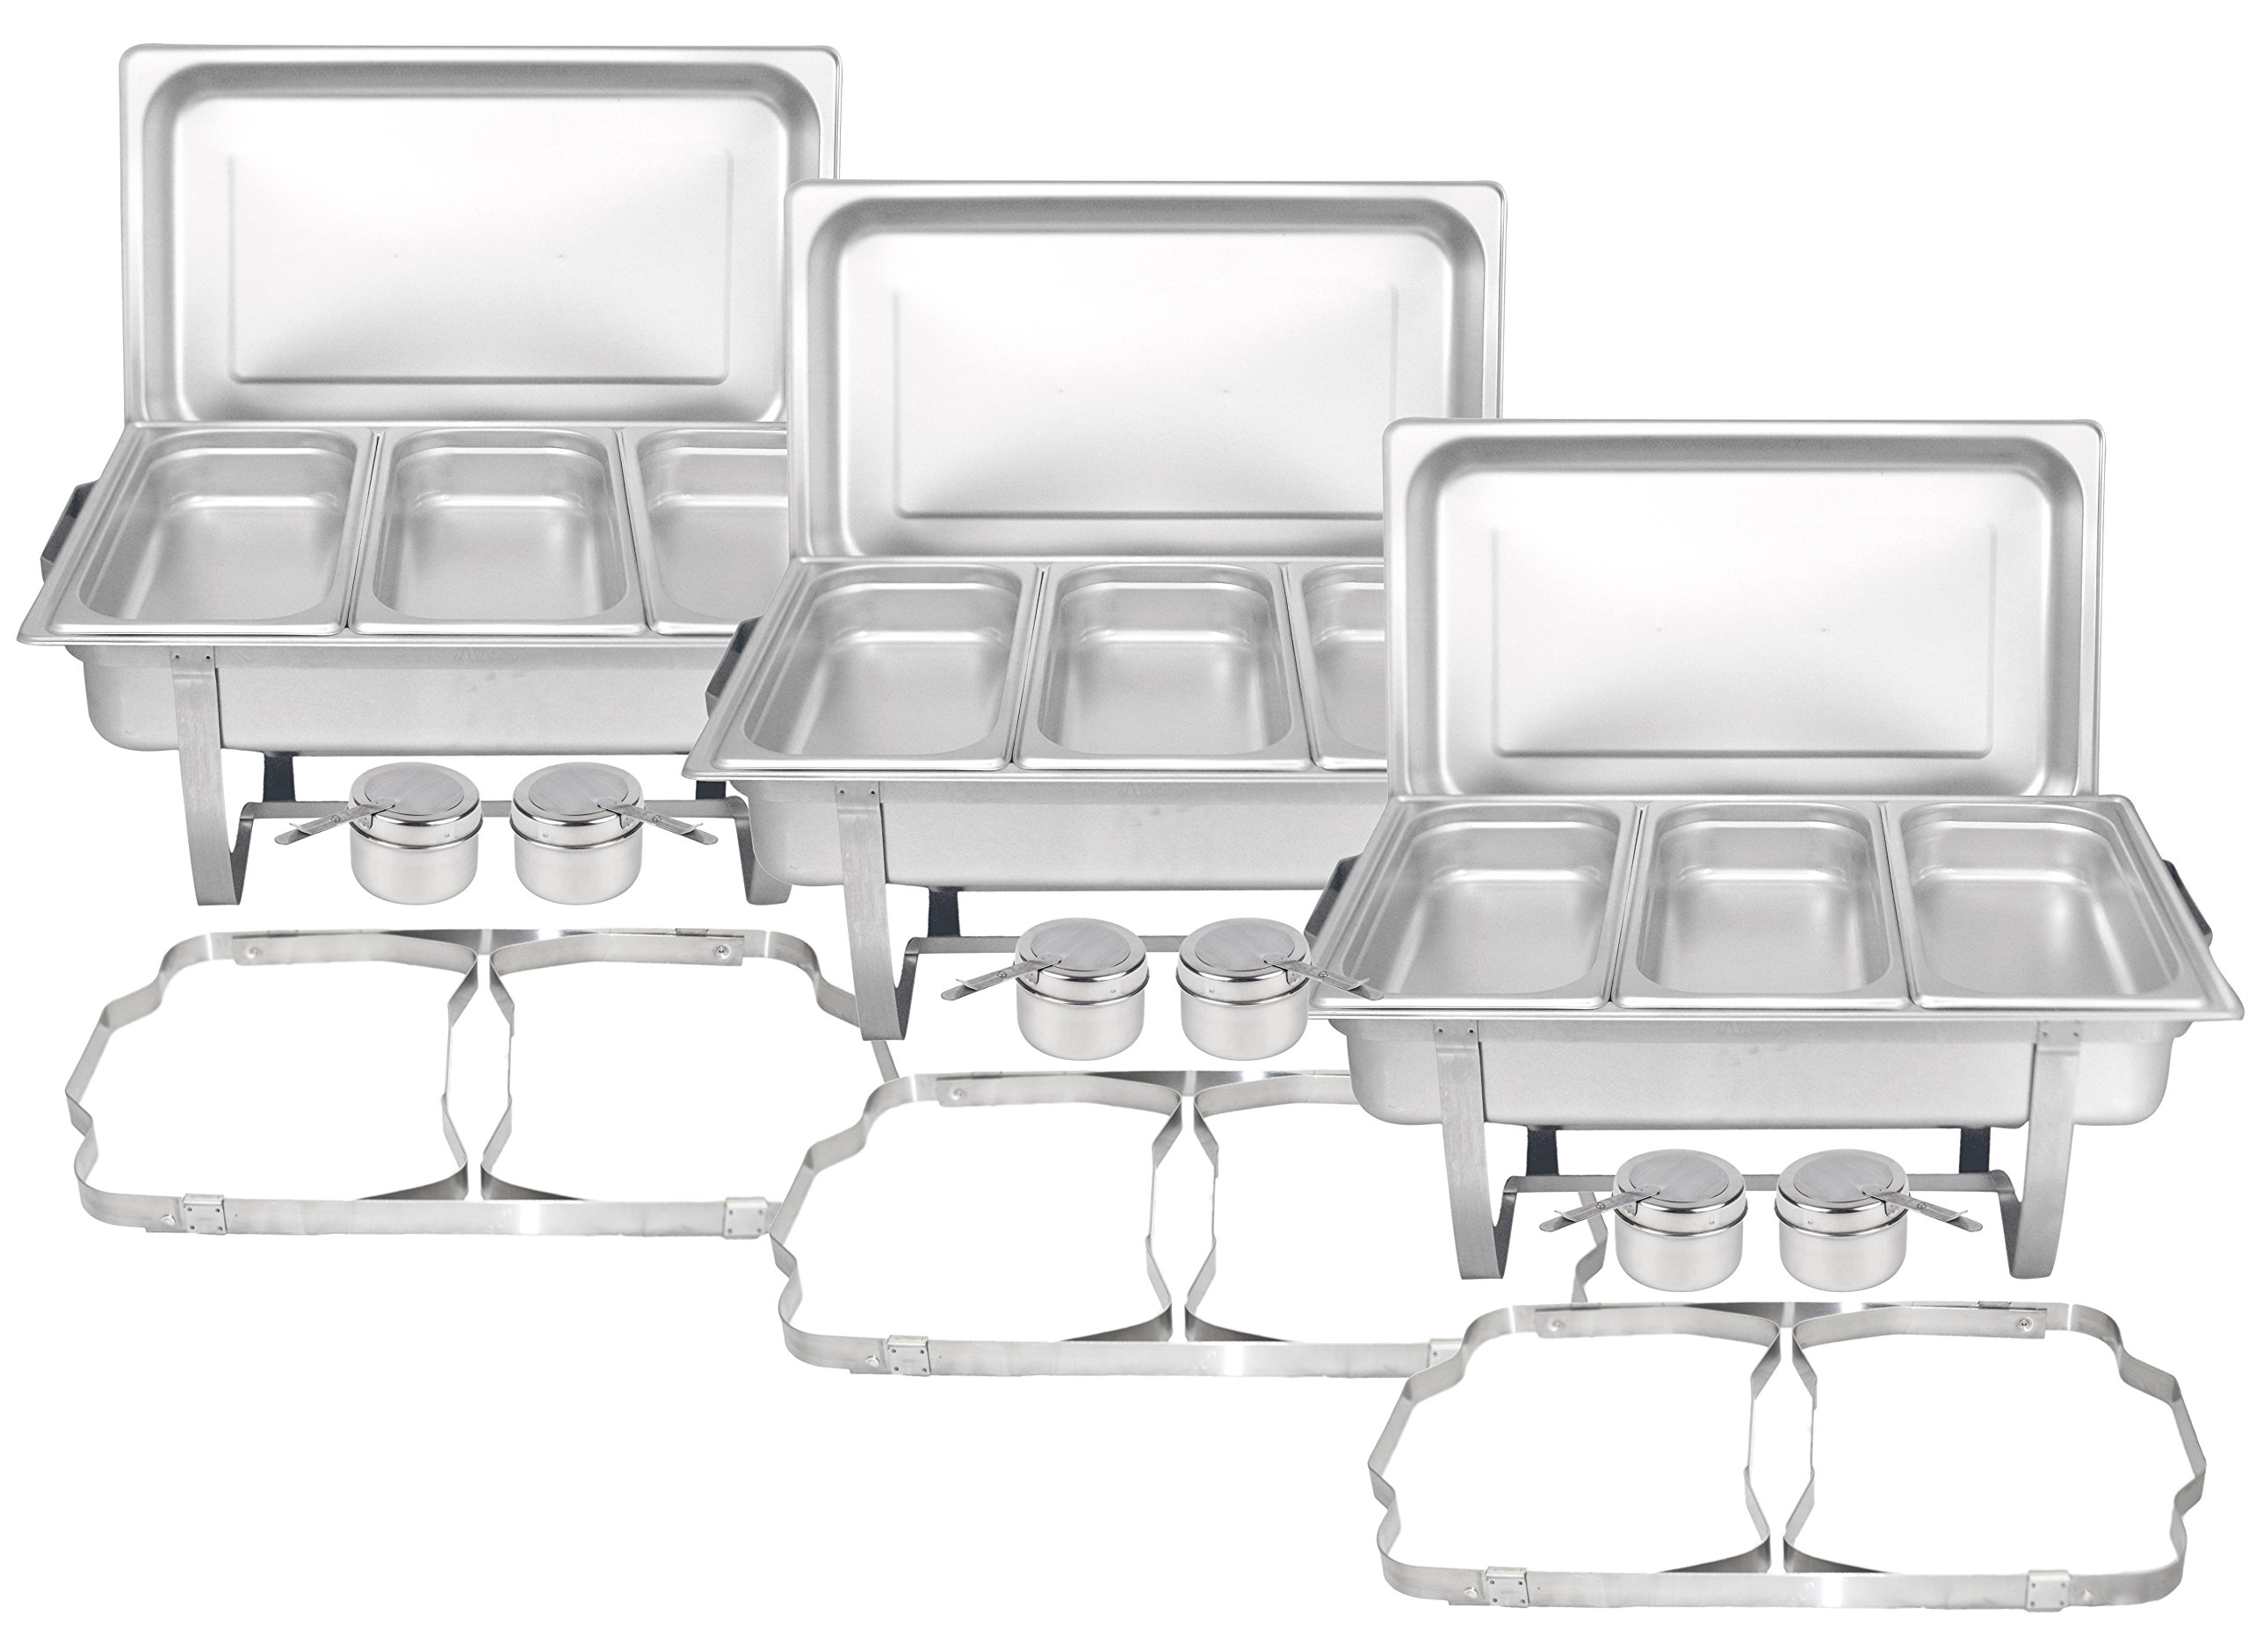 Tiger Chef 3-Pack 8 Quart Full Size Stainless Steel Chafer with Folding Frame and 3 1/3rd Size Chafing Food Pans and Cool-Touch PlasticTop